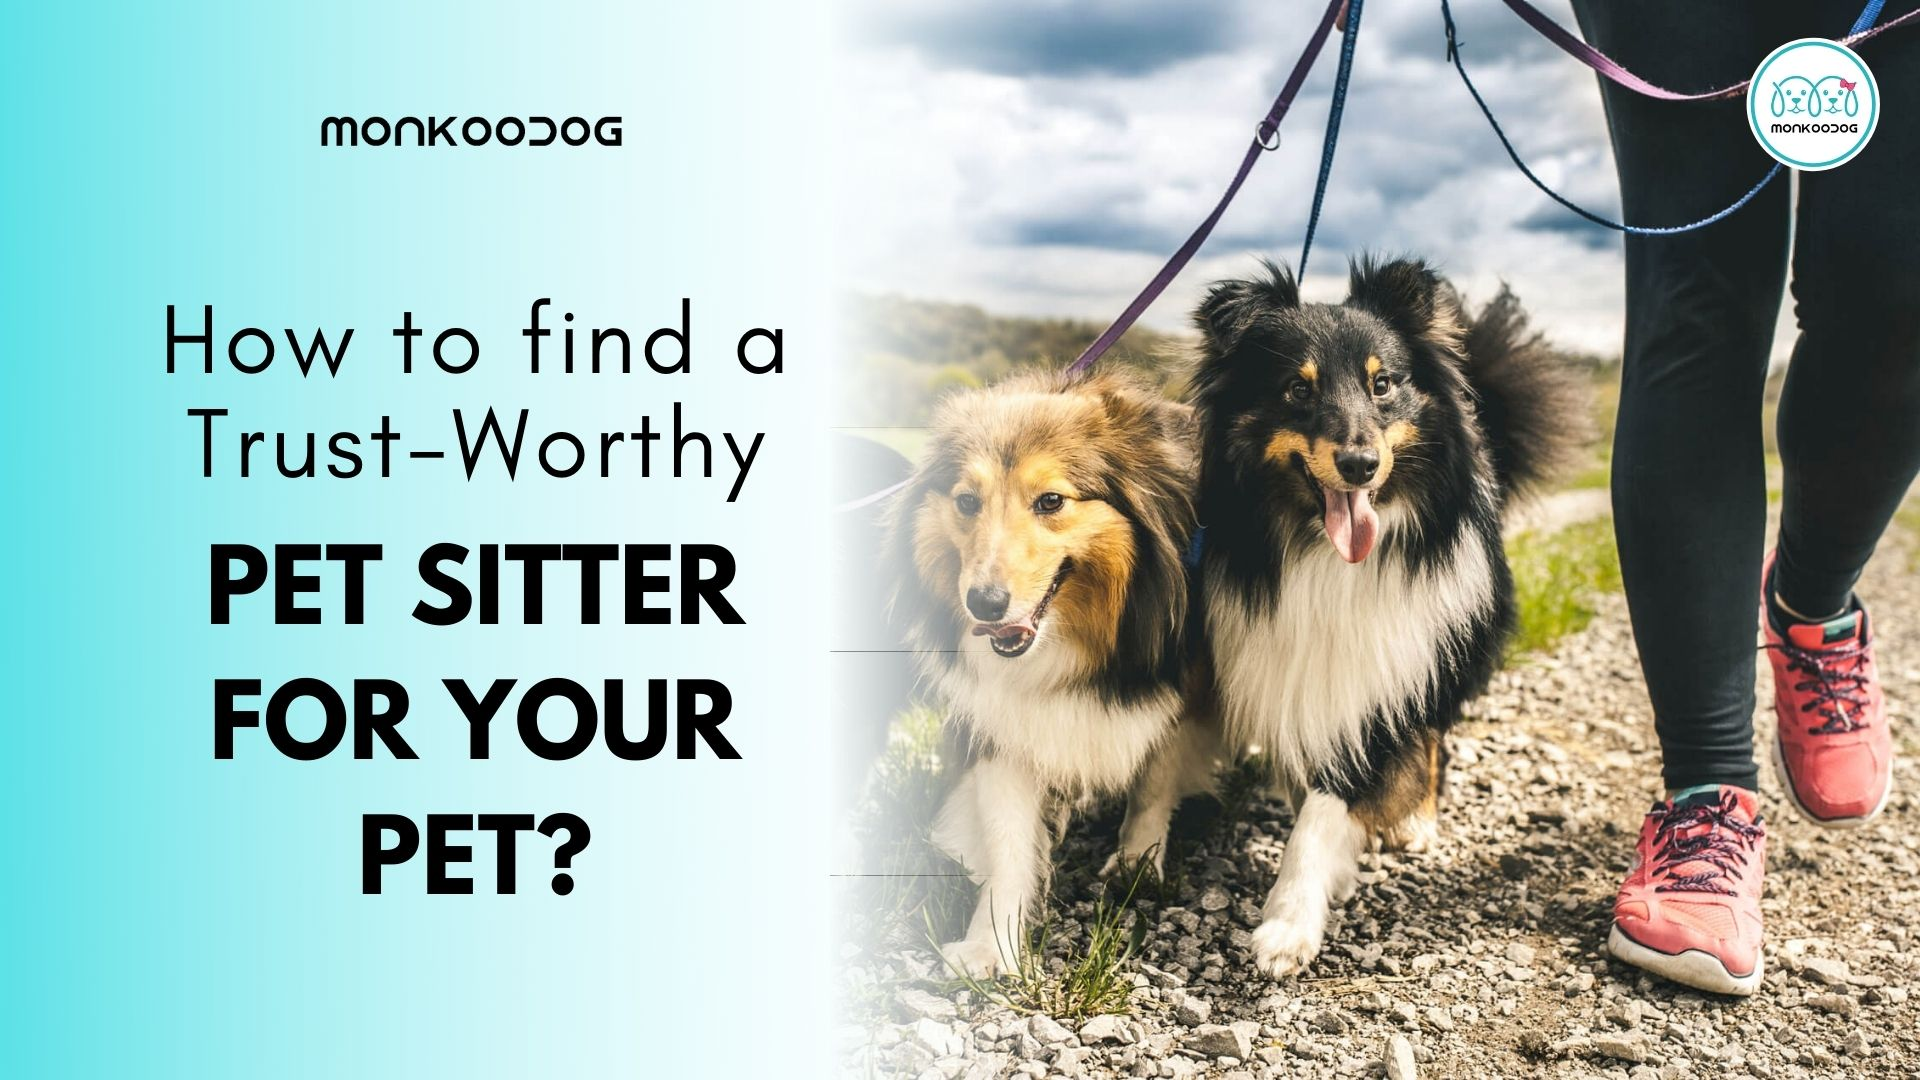 How to find a trust worthy pet sitter for your pet